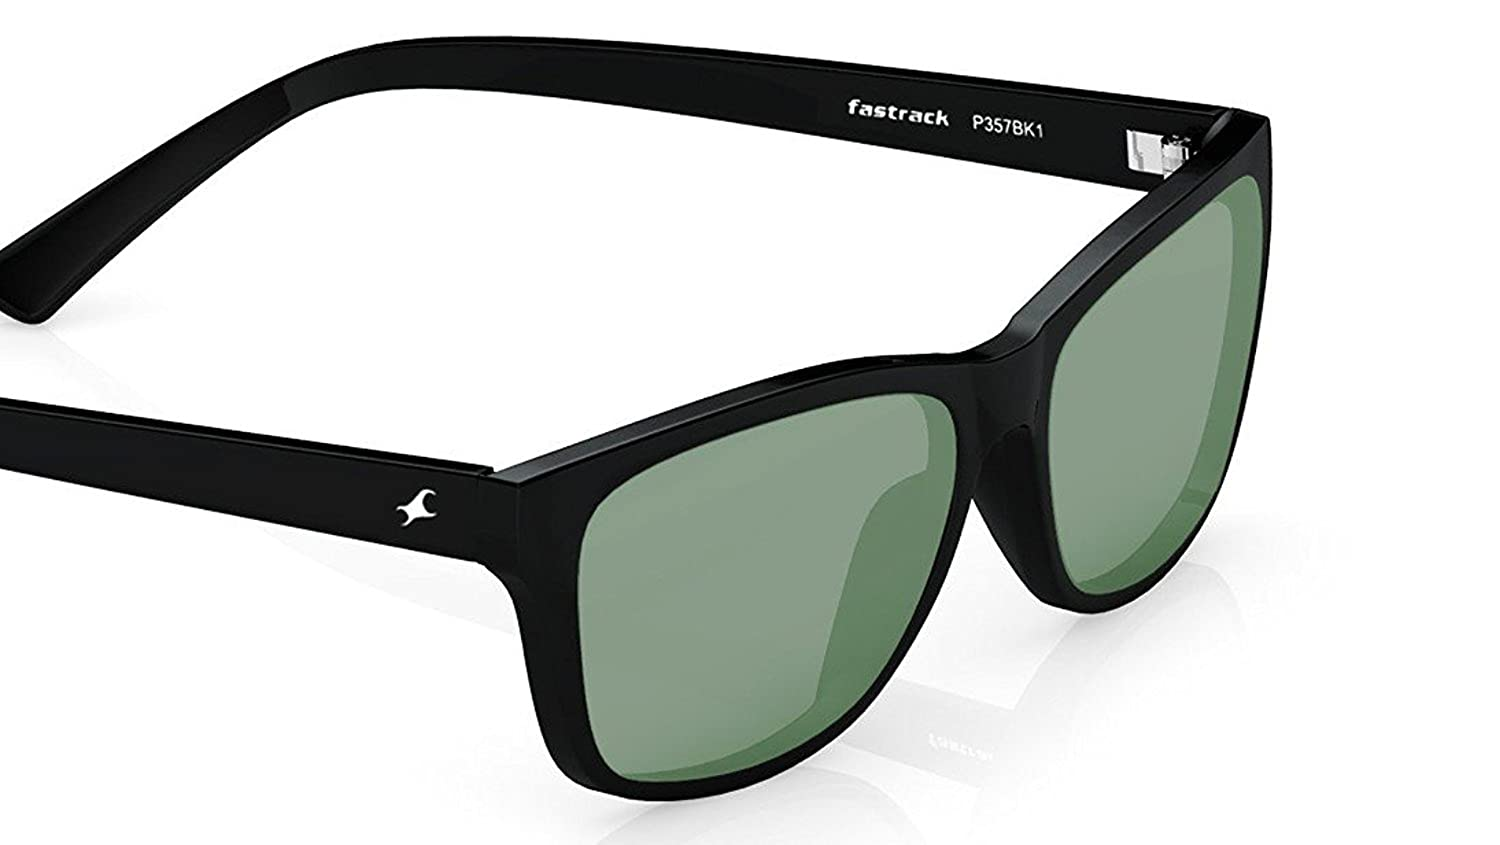 Fastrack UV Protected Square Men's Sunglasses